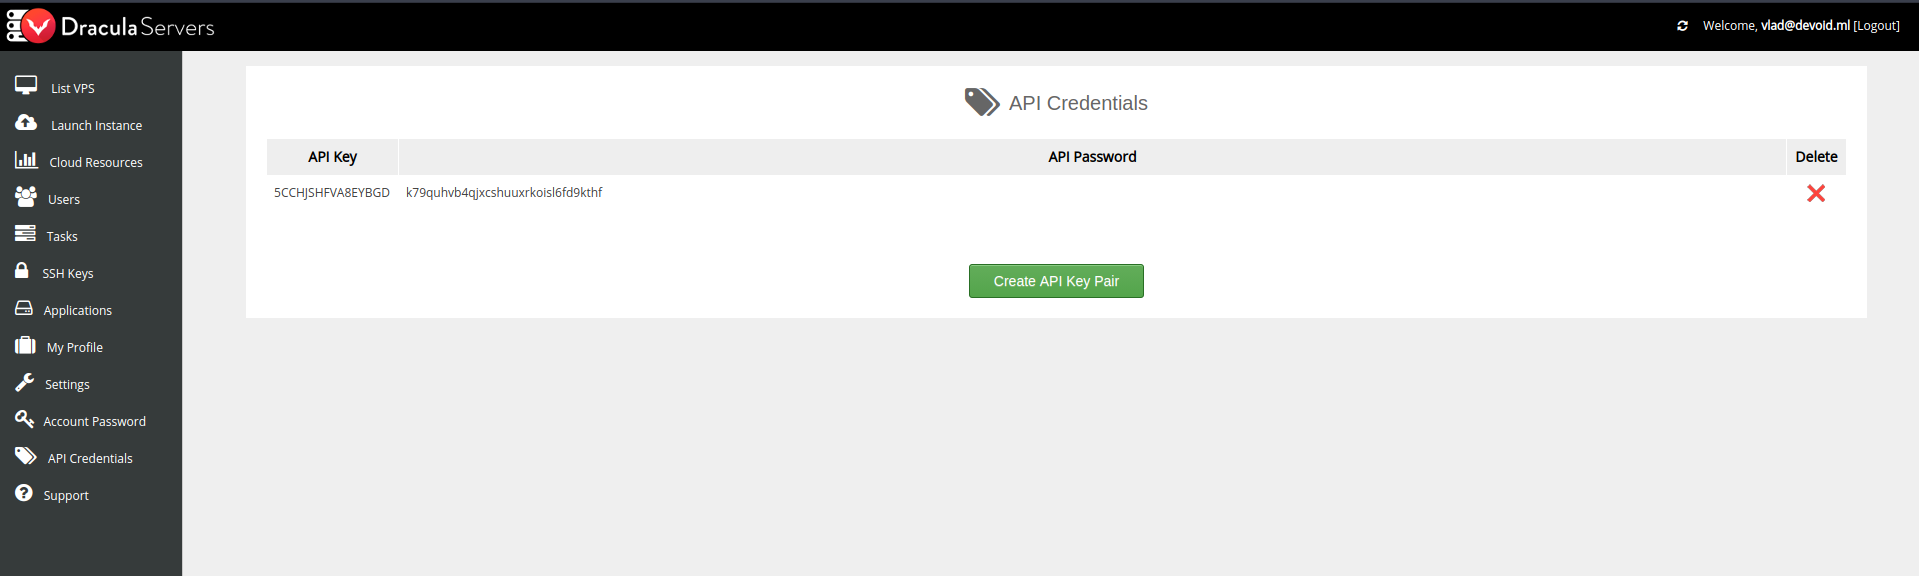 virtualizor_api_credentials_page